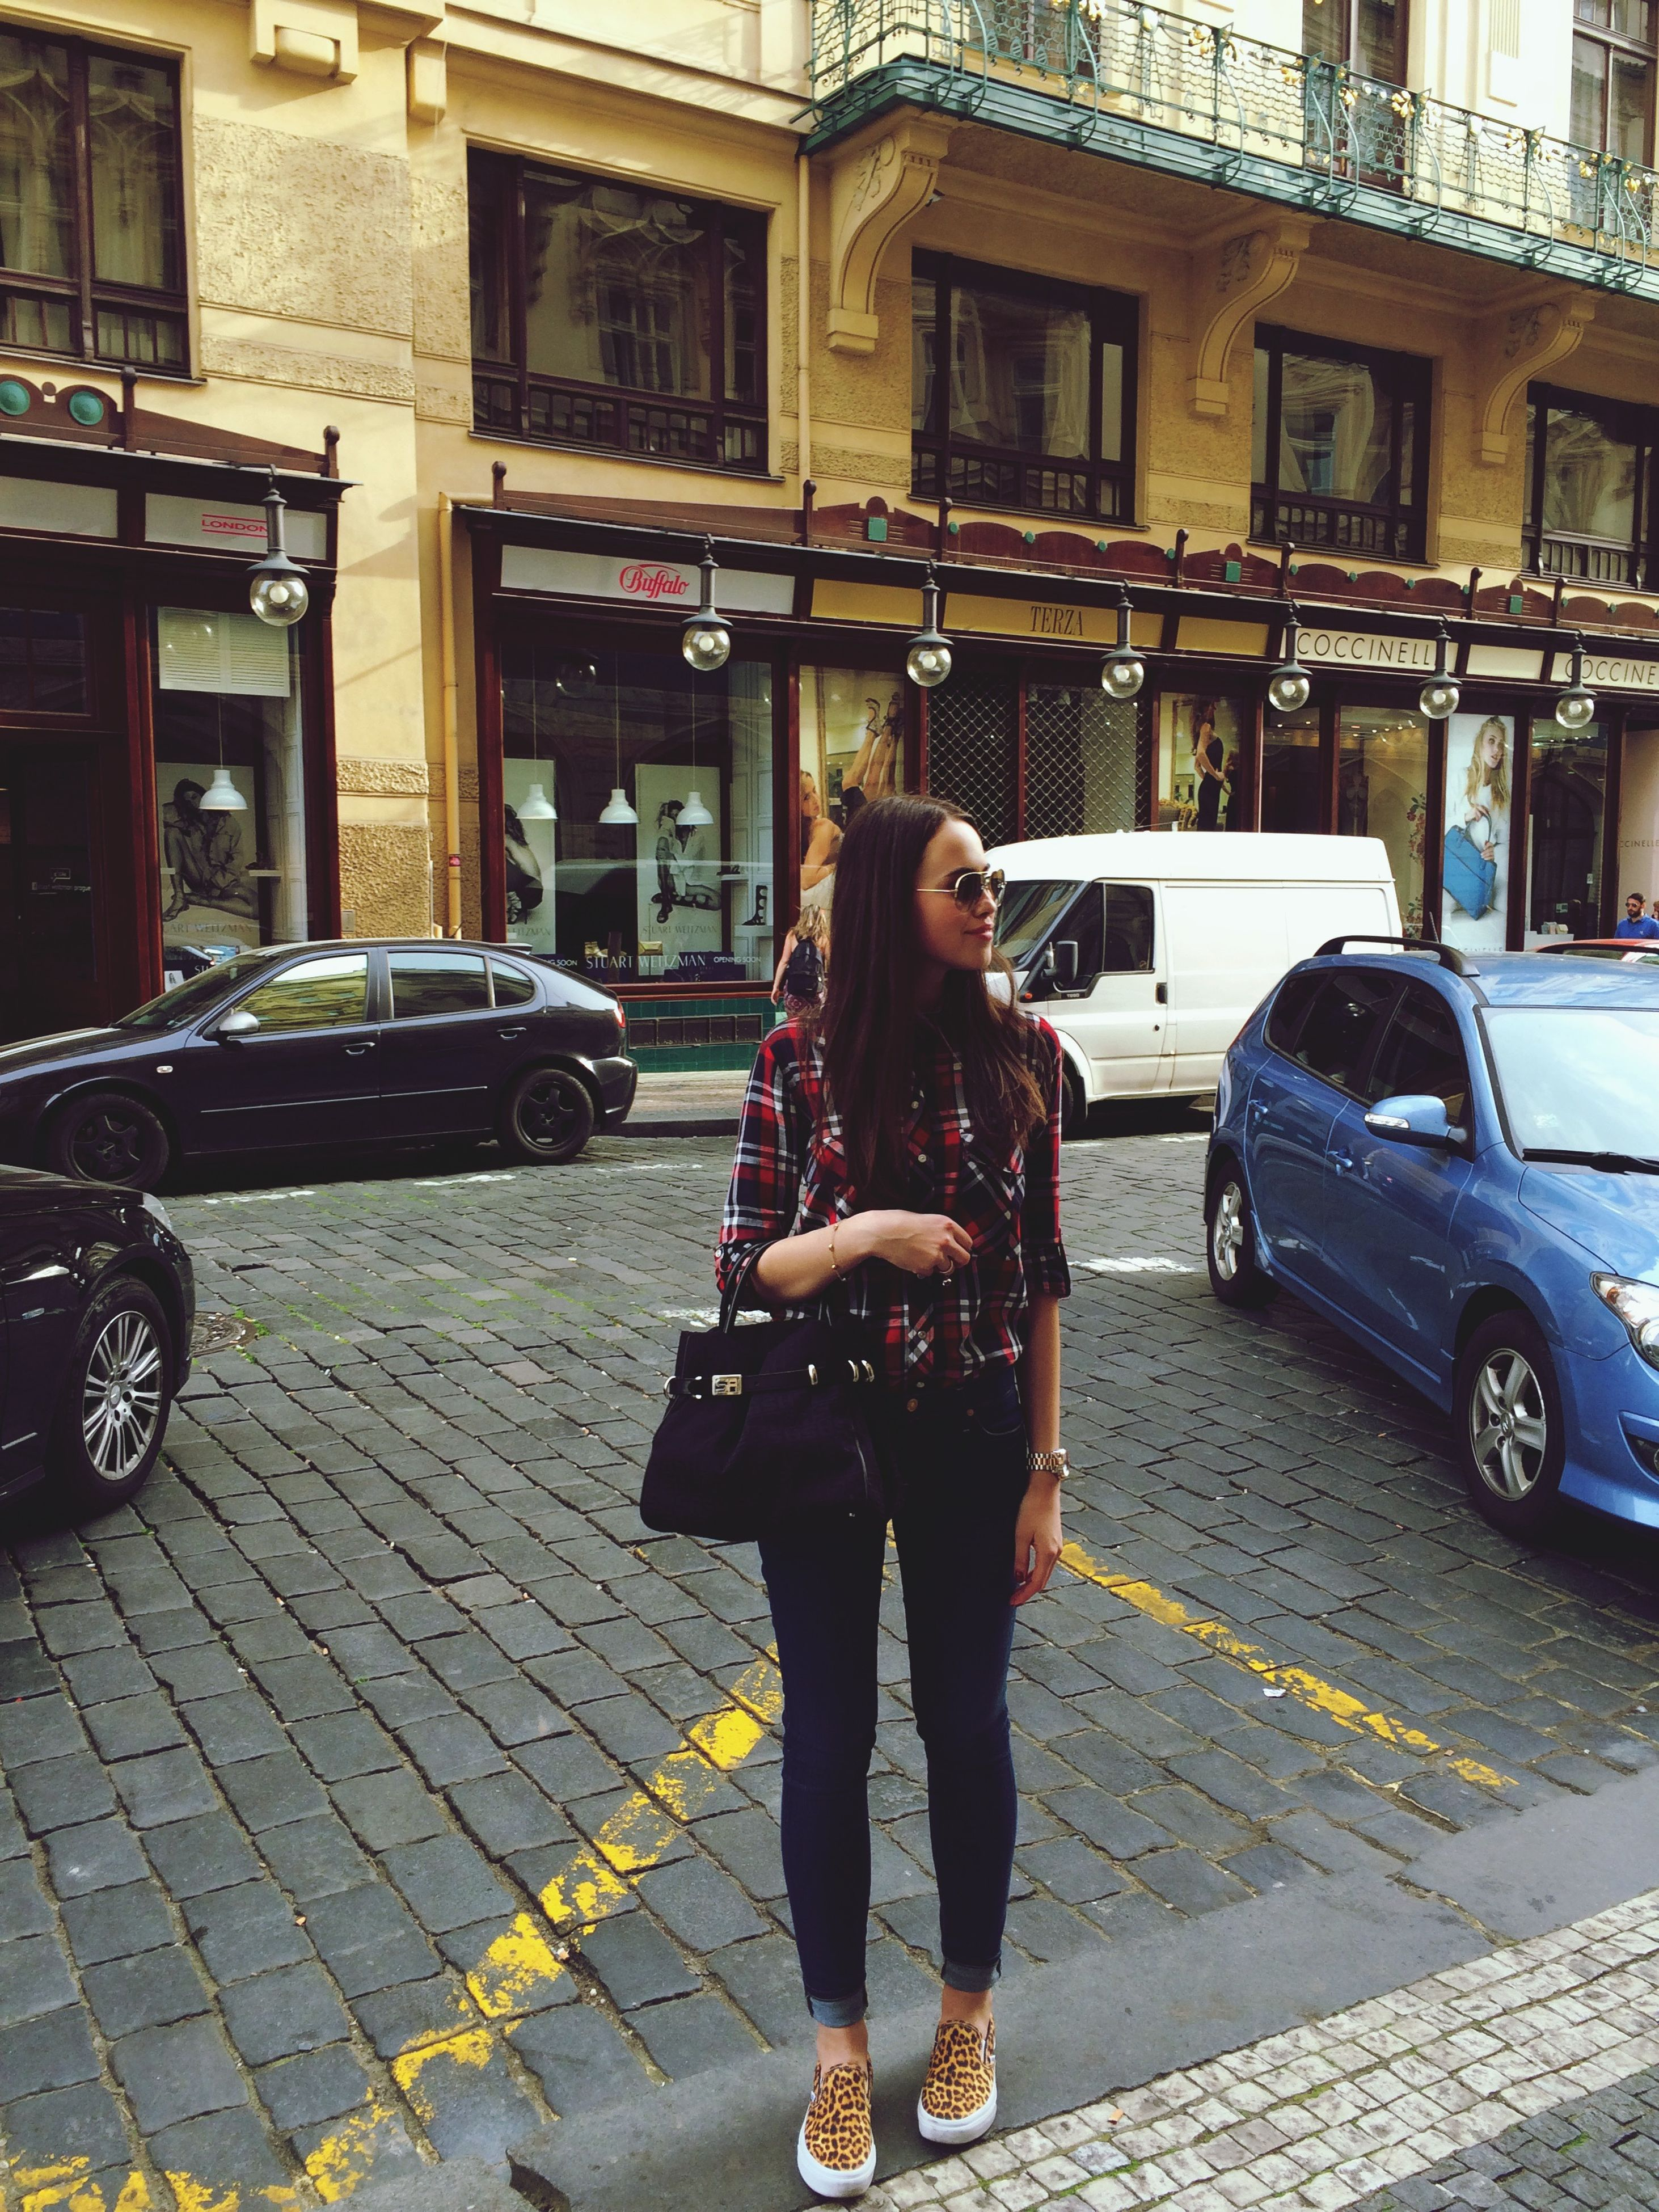 street, lifestyles, full length, casual clothing, building exterior, car, land vehicle, transportation, leisure activity, city, sidewalk, road, mode of transport, city life, architecture, built structure, rear view, city street